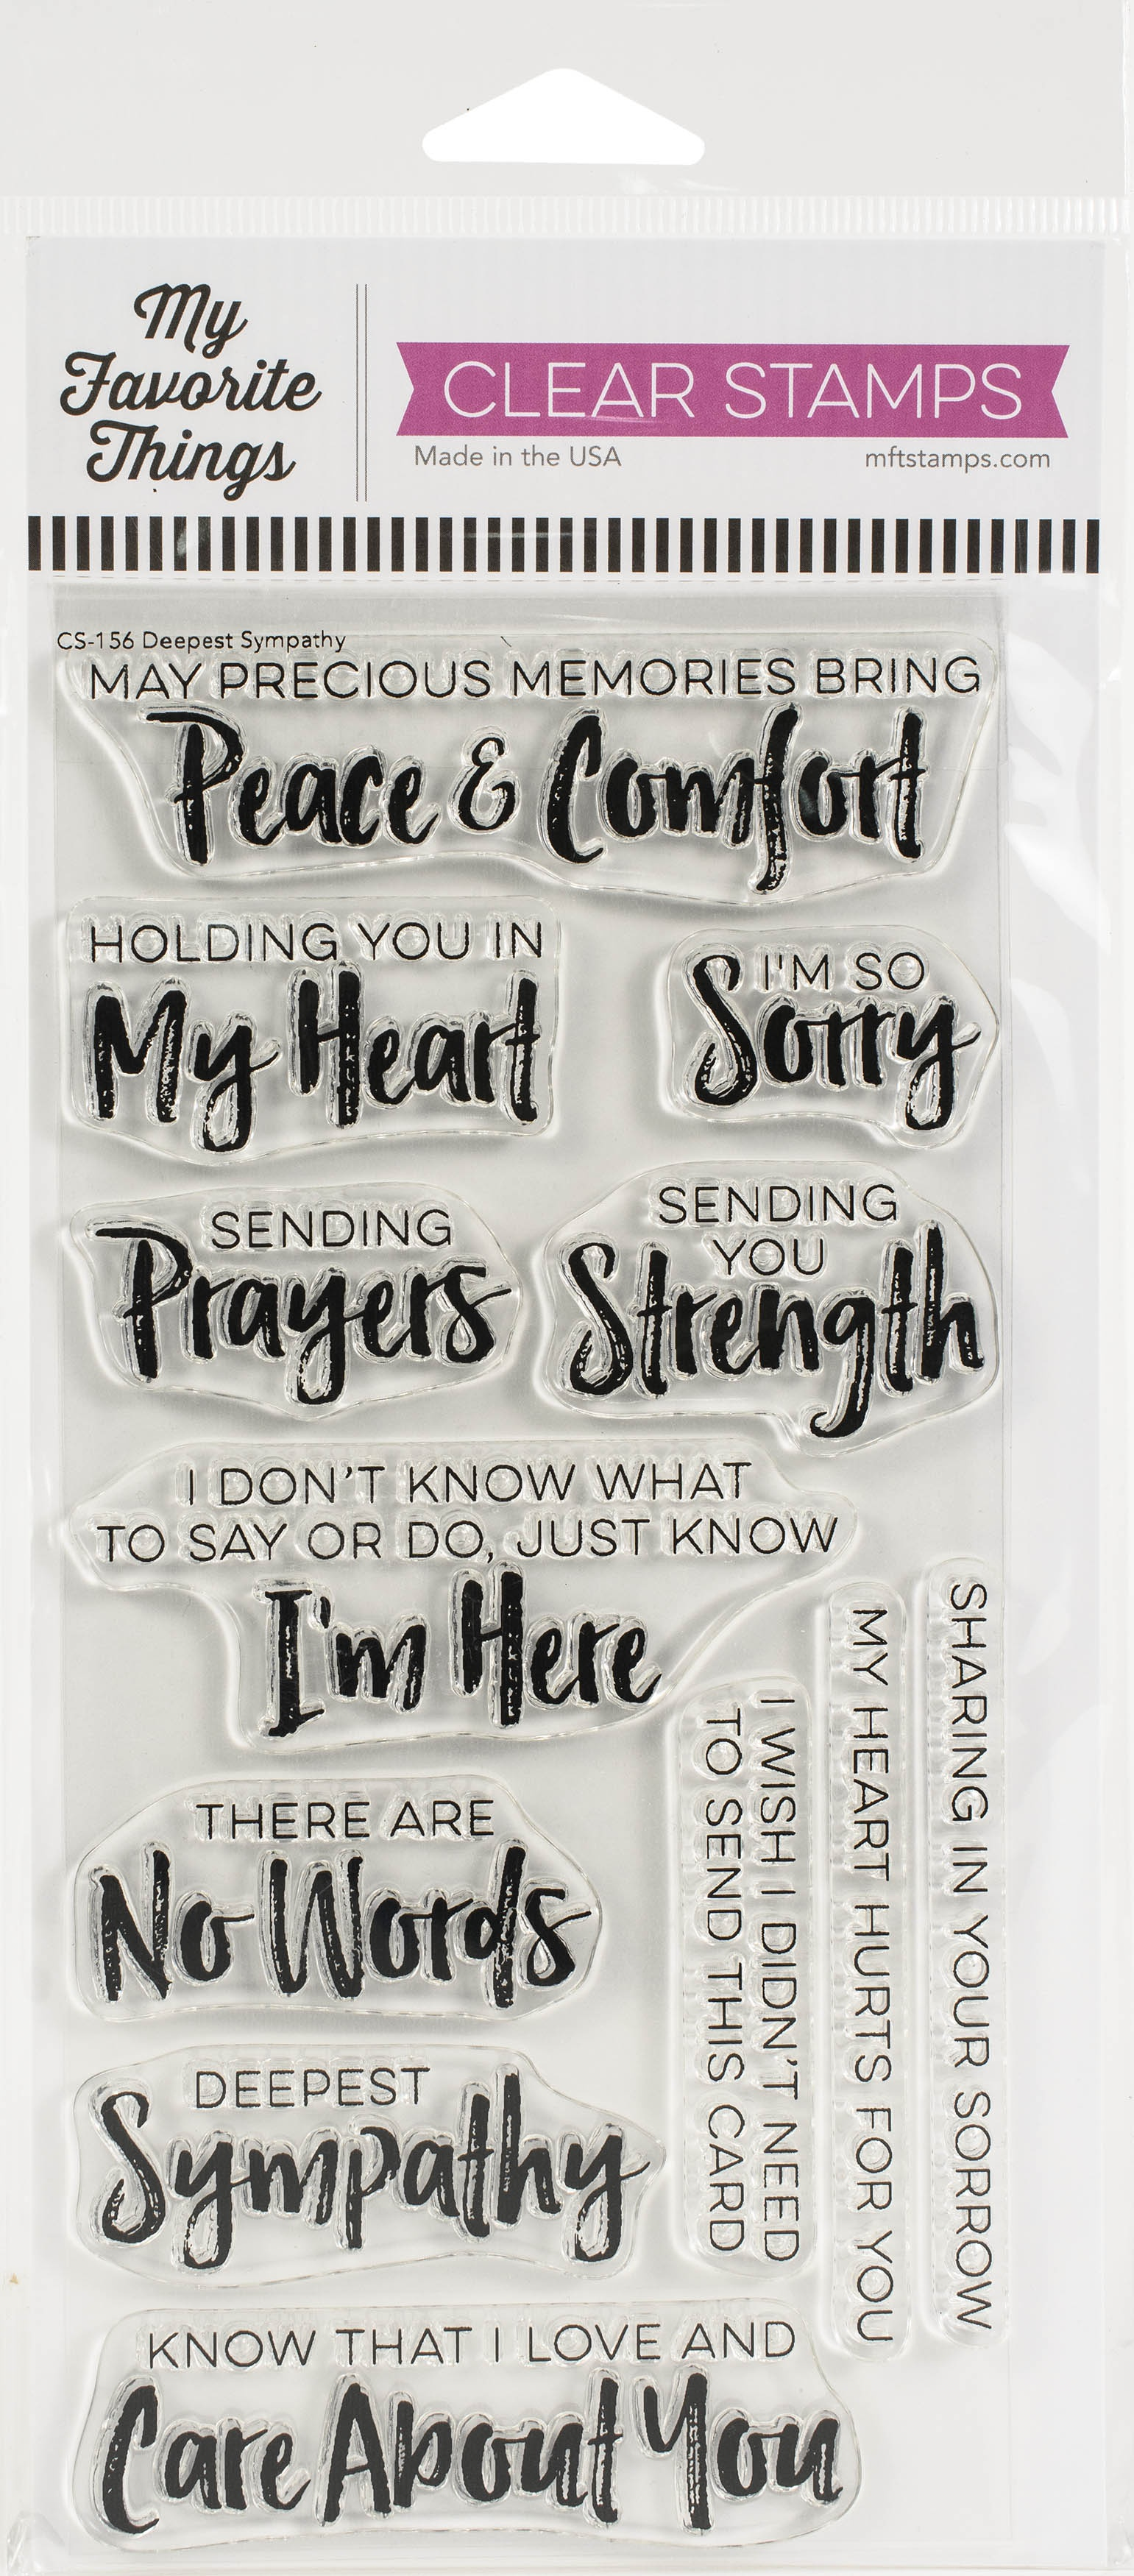 My Favorite Things Clearly Sentimental Stamps 4X8-Deepest Sympathy